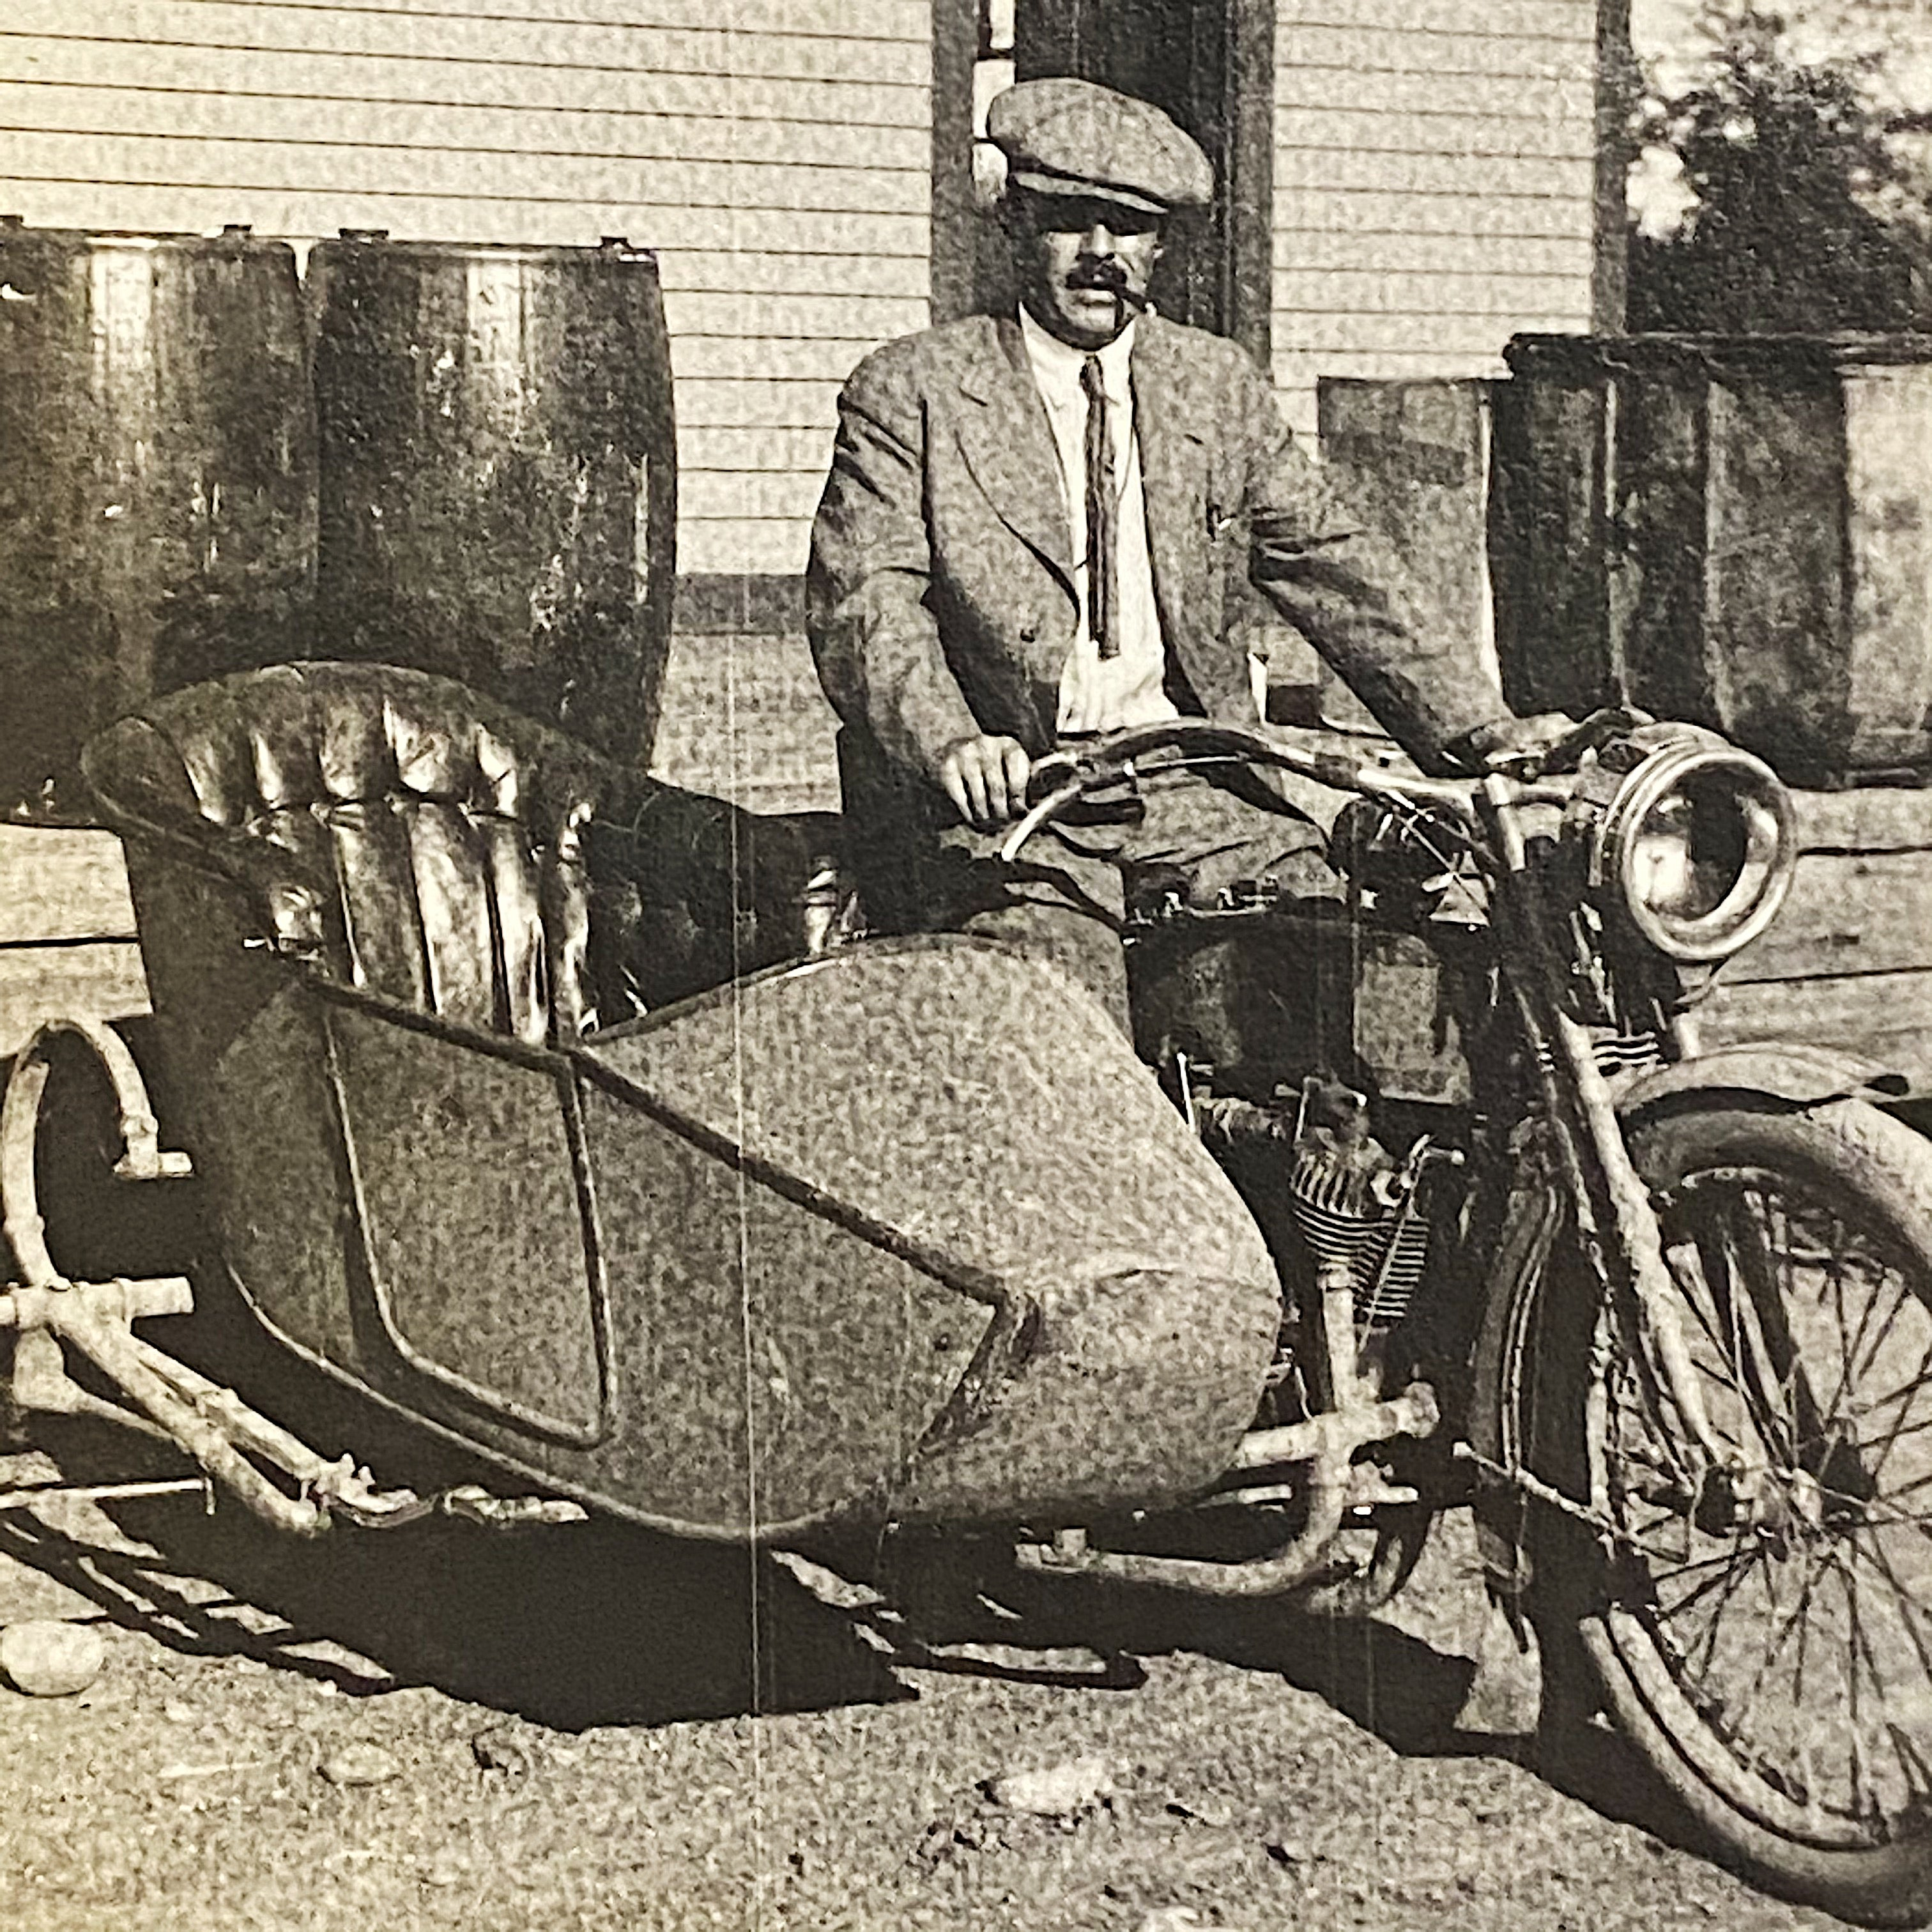 Old Motorcycle and Sidecar from Antique Photo Album from Early 1900s - Indian Motorcycle - Car Racing - Railroad Photography - Camping - Military - 138 Photographs